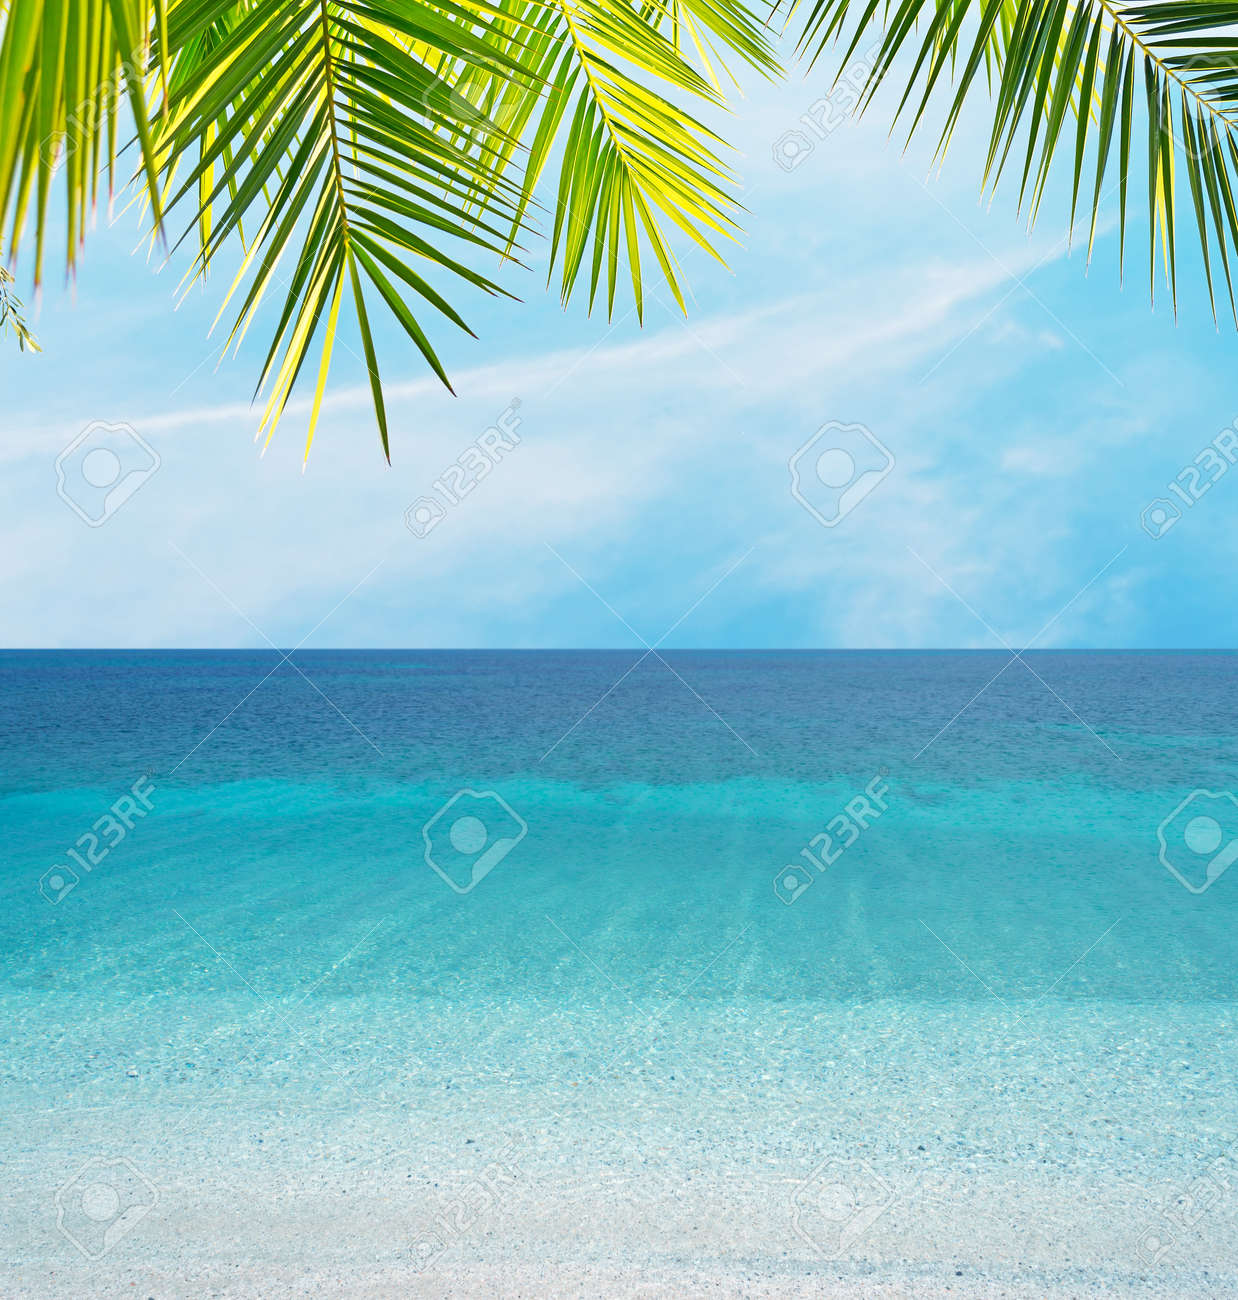 palm leaves by the shore - 25213151